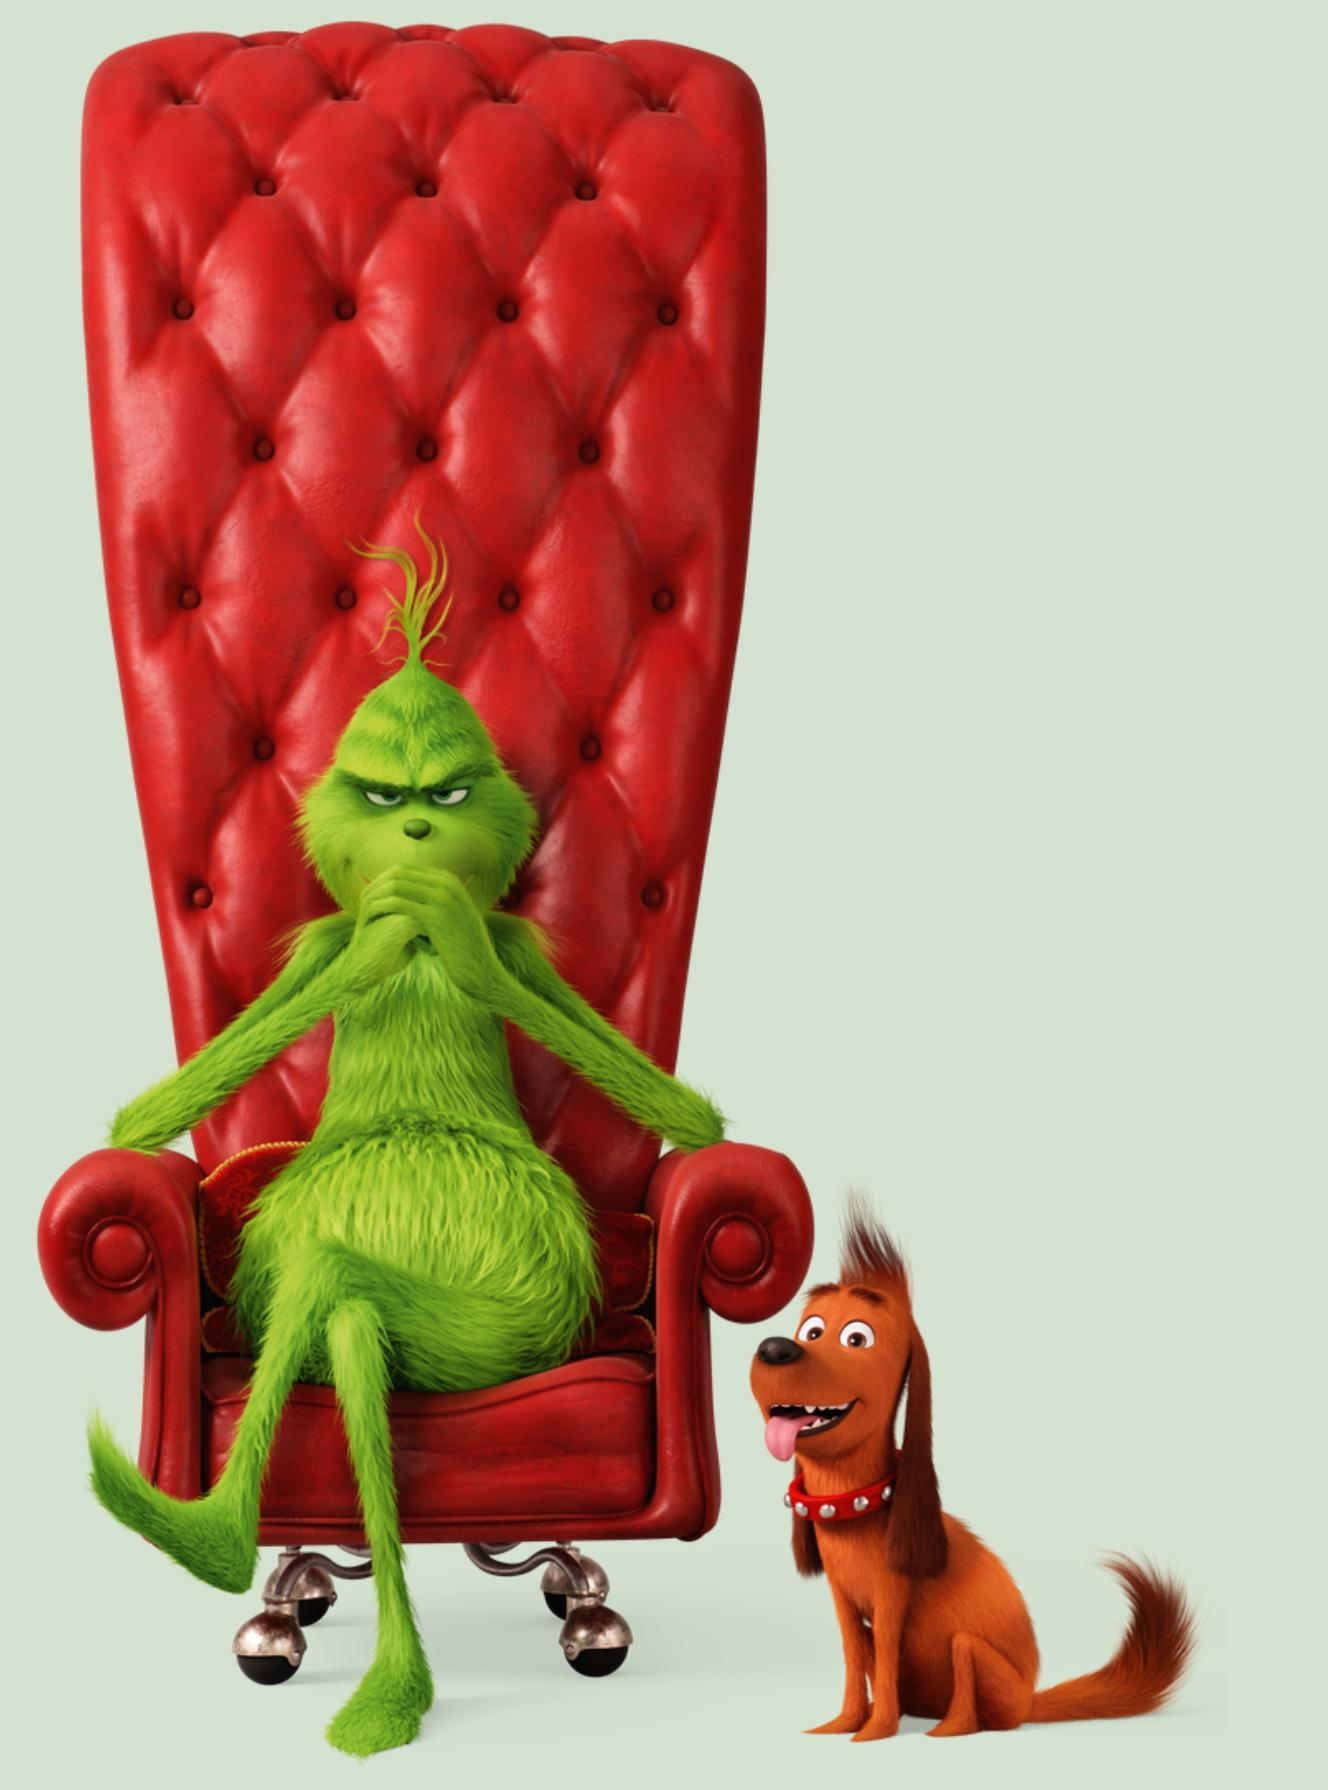 The Grinch Wallpaper